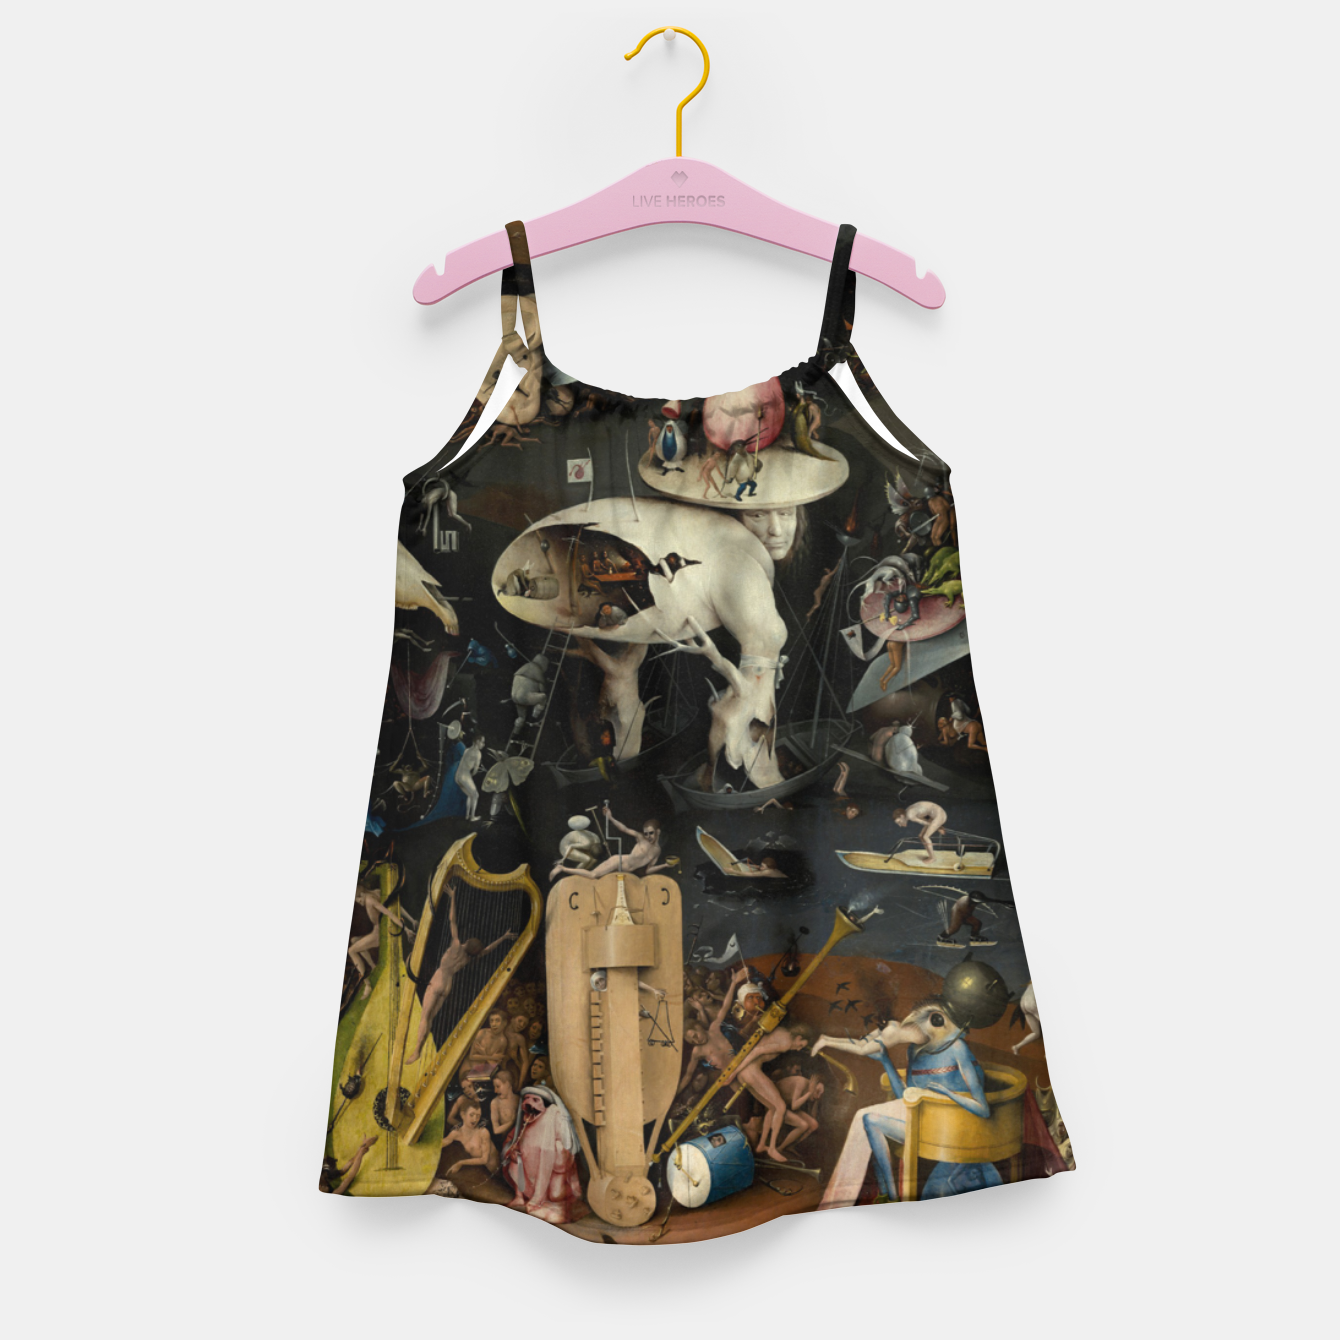 Foto Fashion and decor items from Hieronymus Bosch painting of Hell from the triptych Garden of Earthly Delights Girl's dress - Live Heroes